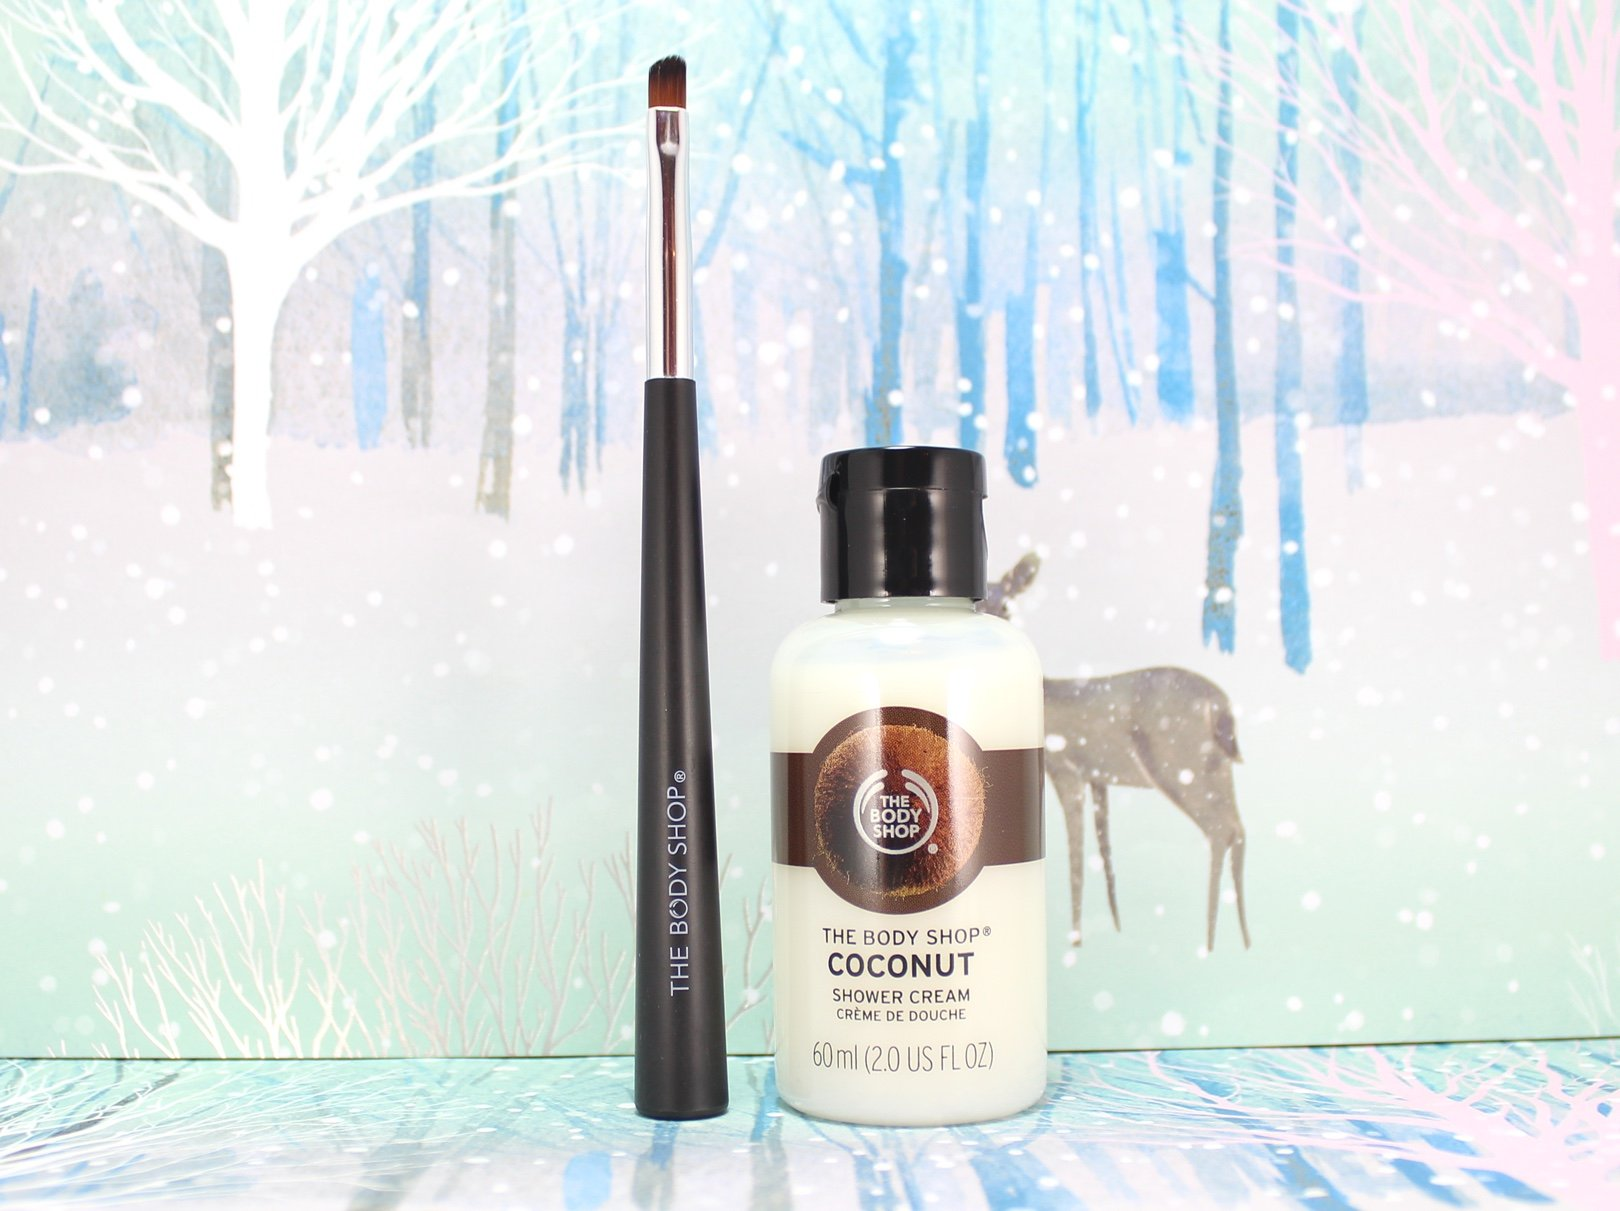 The Body Shop Deluxe Advent Calendar: Days 15-16 review